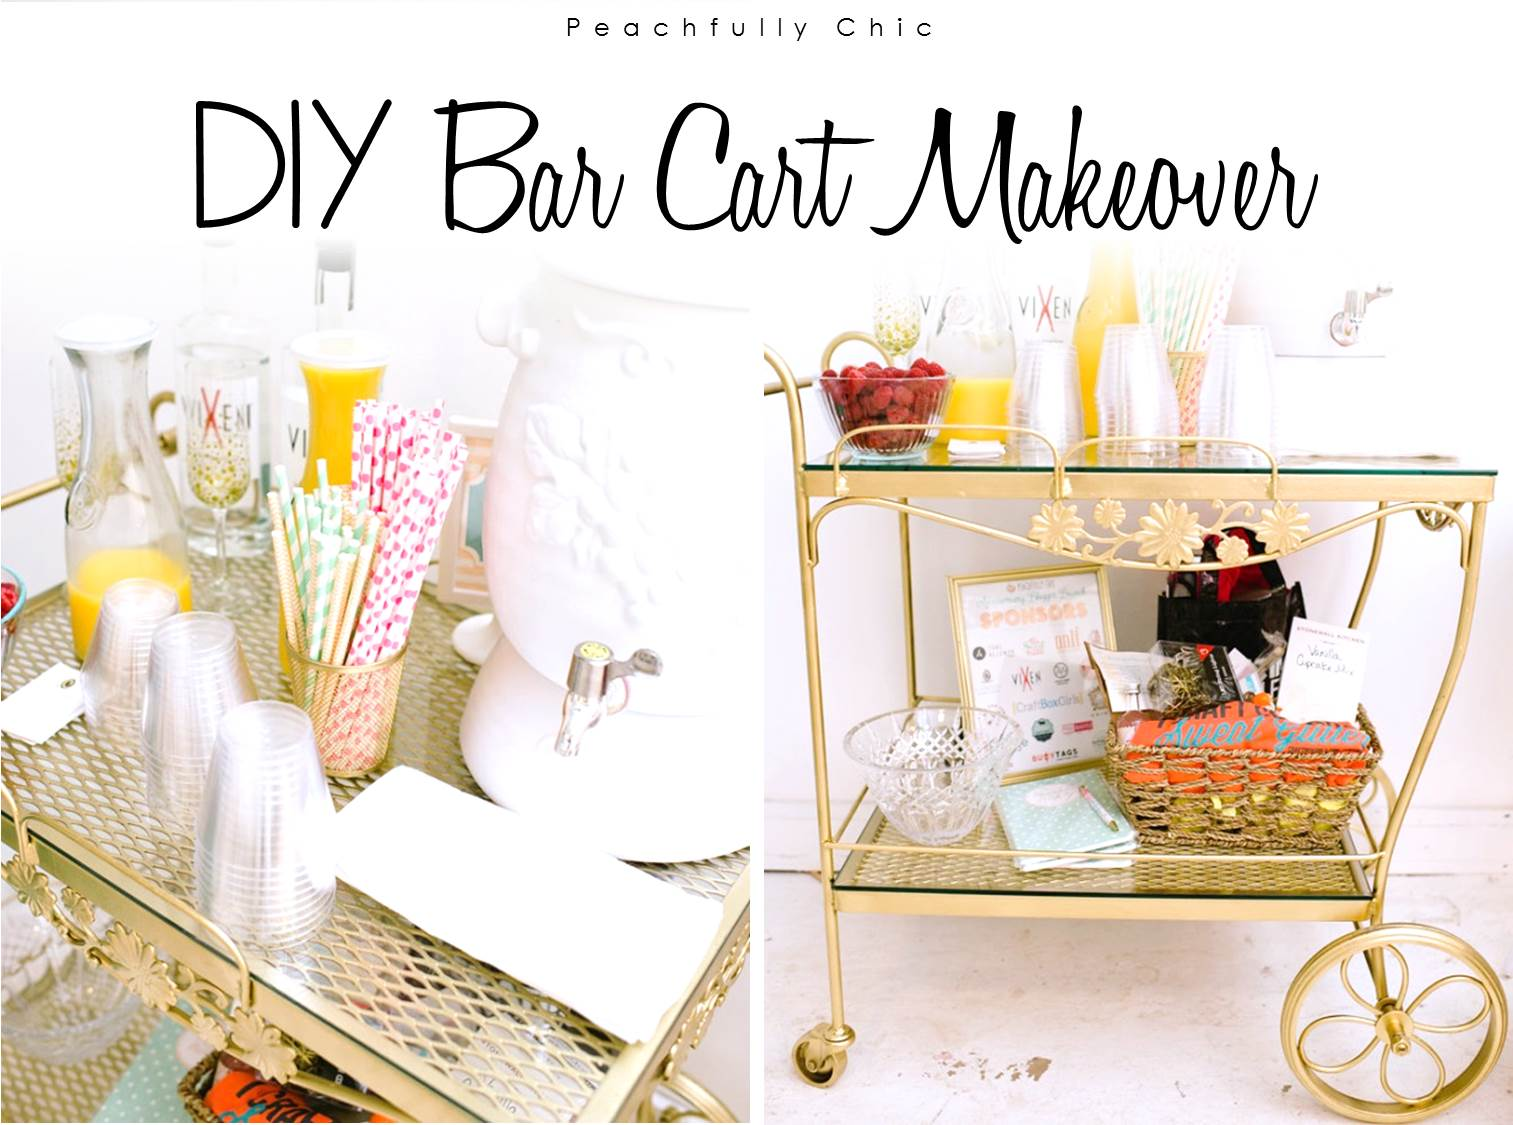 peachfully-chic-diy-bar-cart-gold-vintage-makeover-main